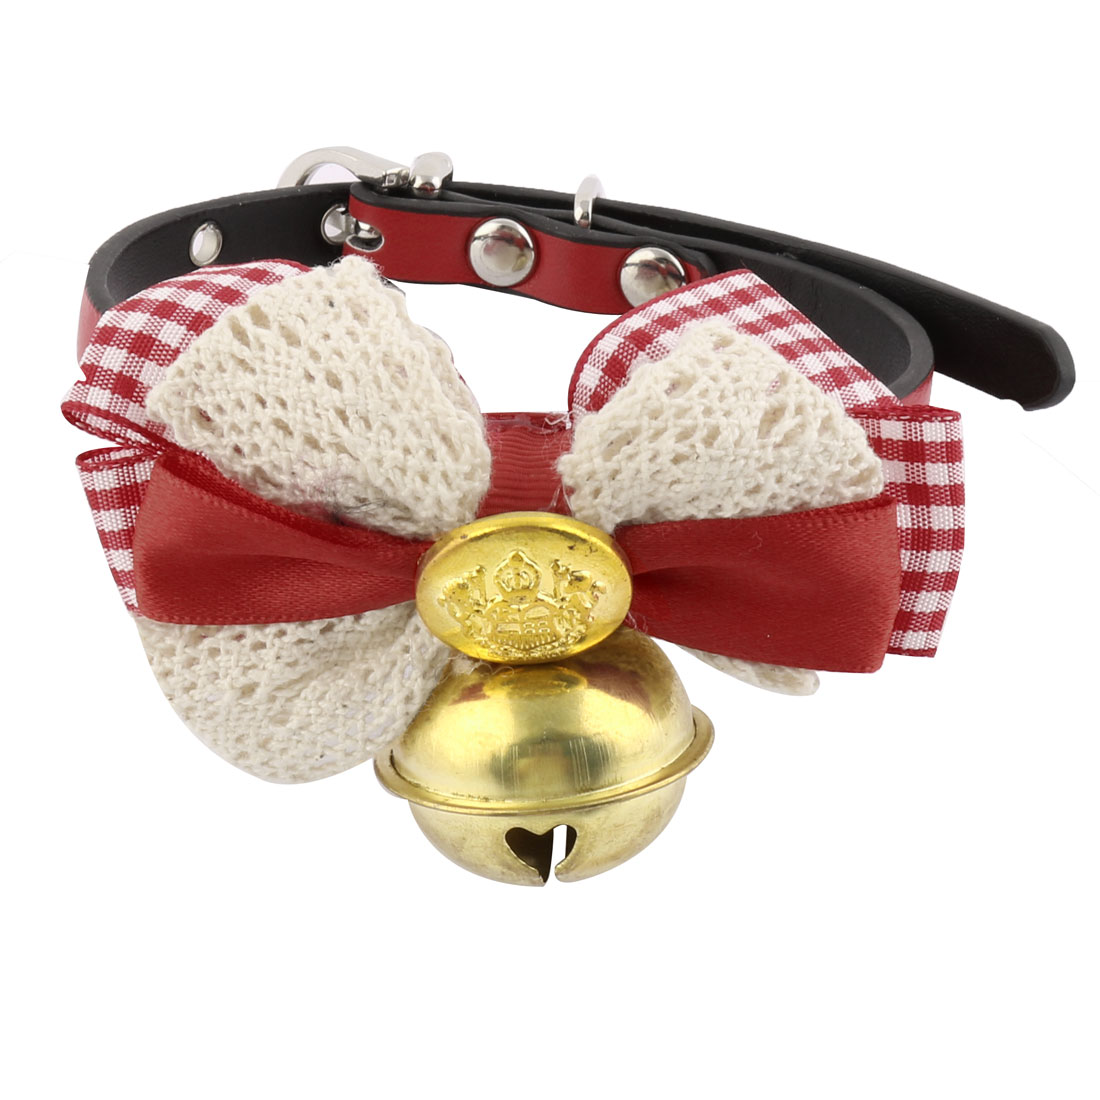 Faux Leather Bowknot Shaped Metal Bell Pendent Animal Pet Dog Cat Collar Red Gold Tone